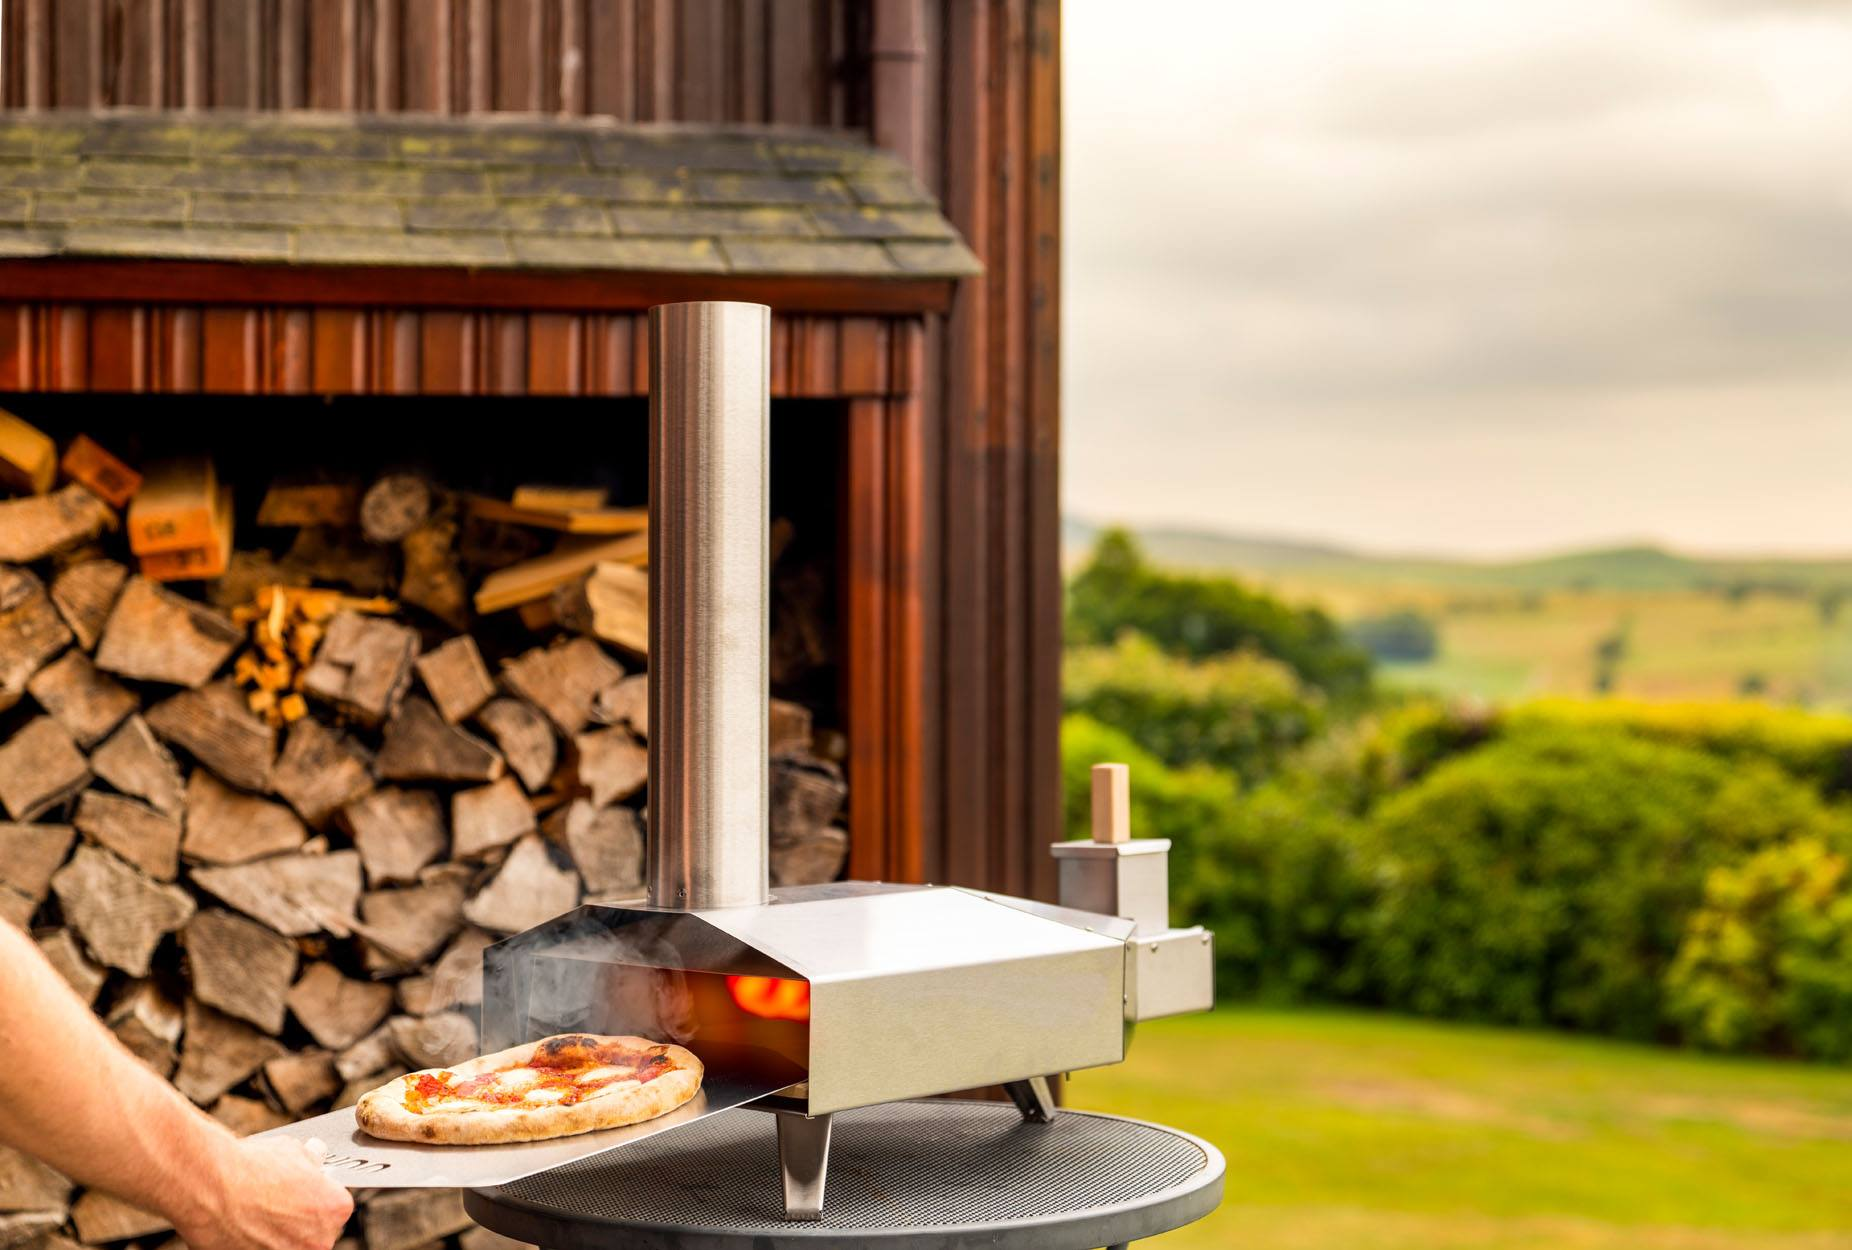 Wood-fired portable pizza oven